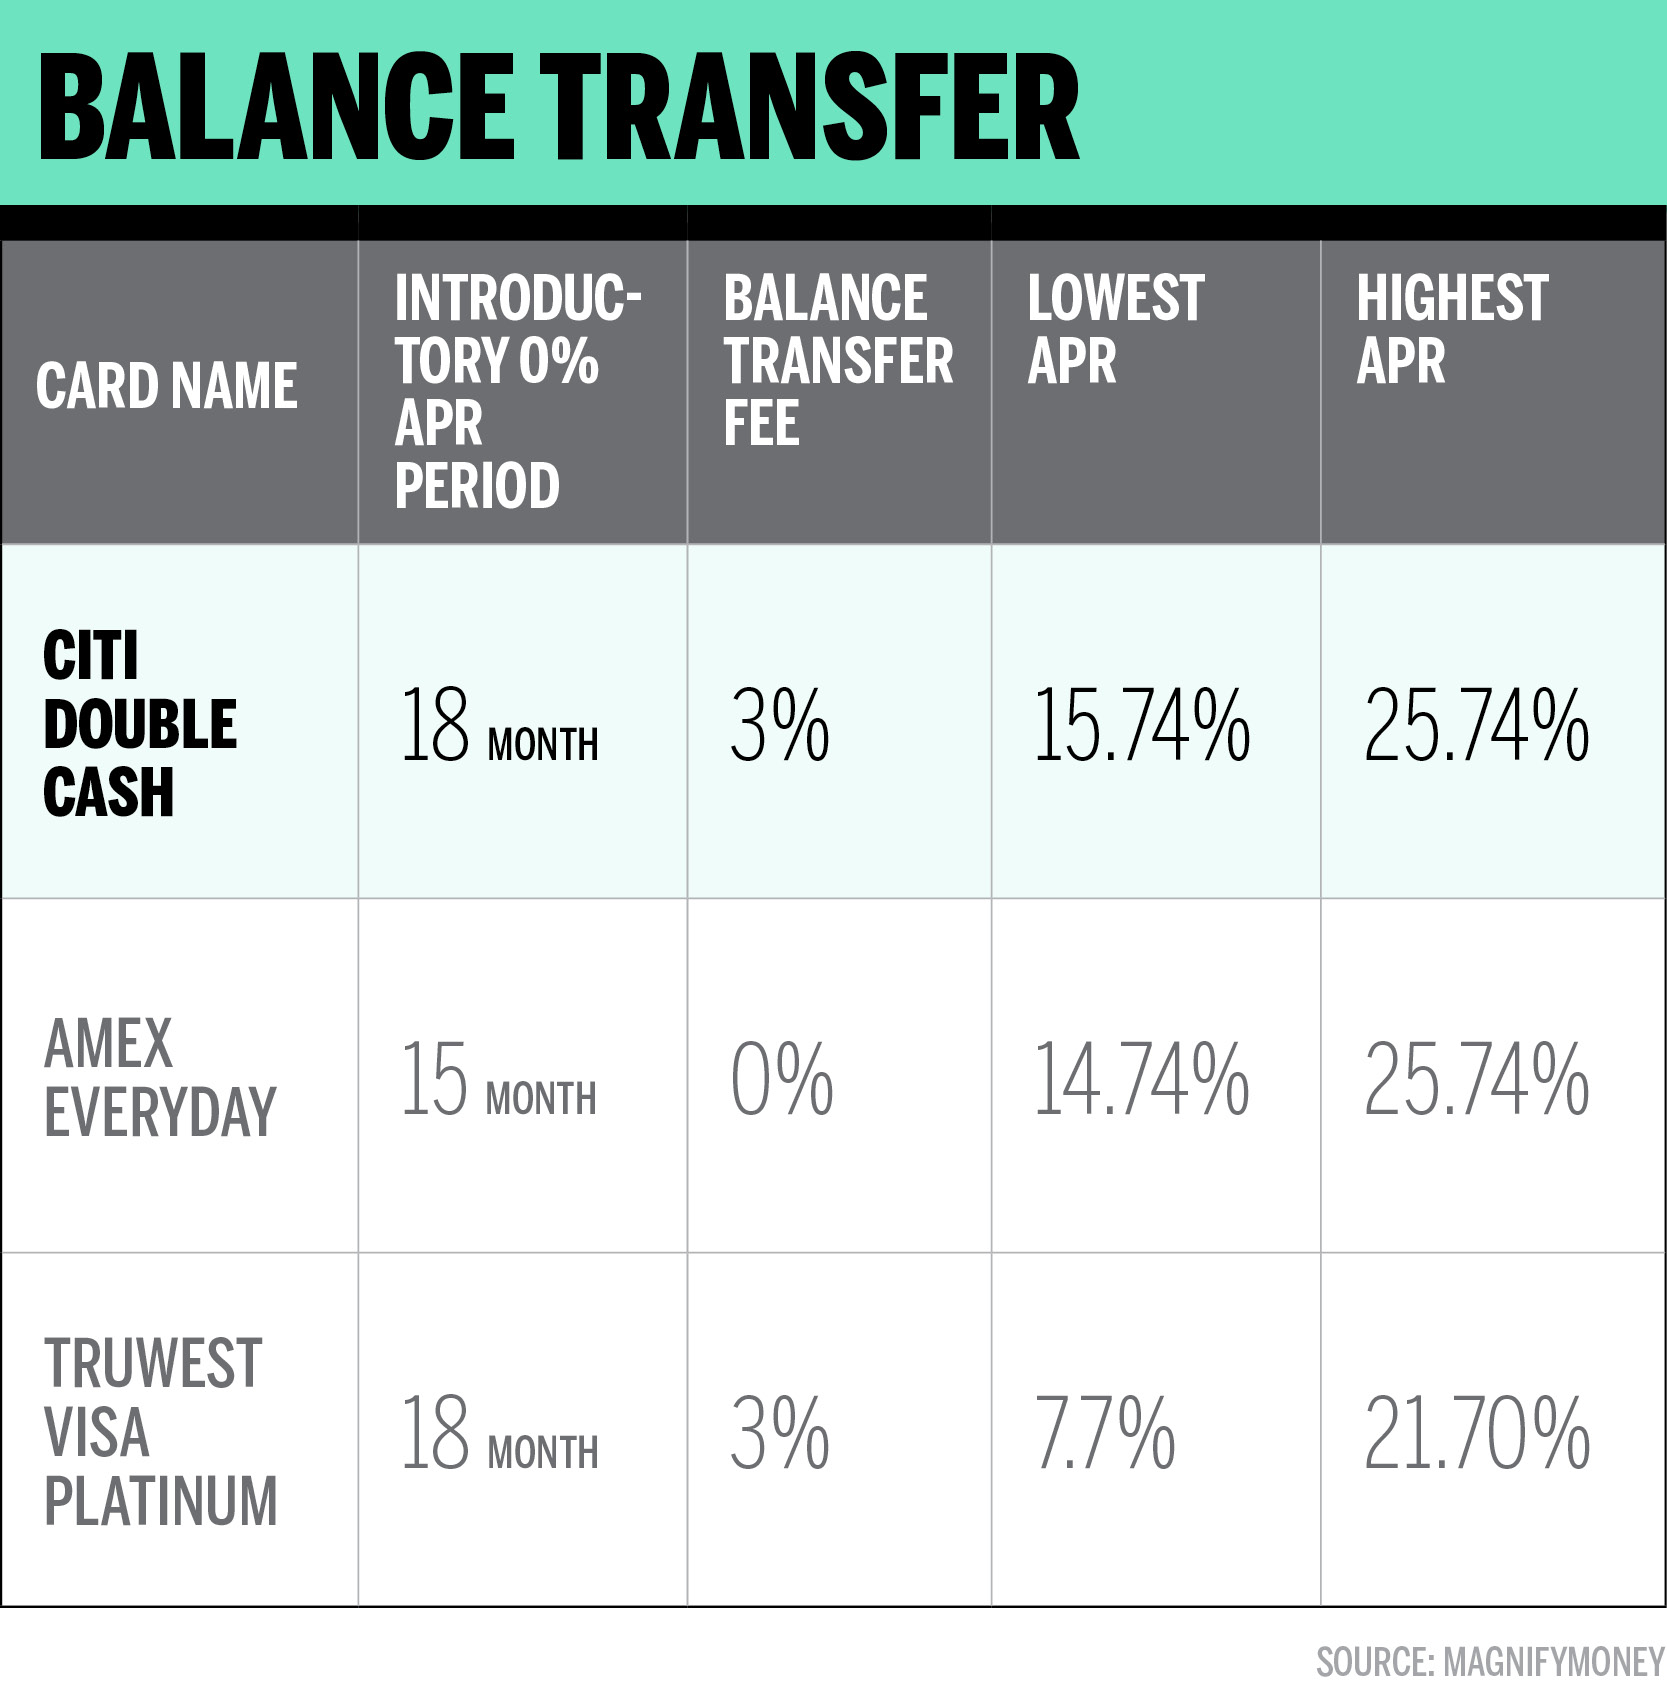 This is the Best Balance Transfer Credit Card for 8 Money